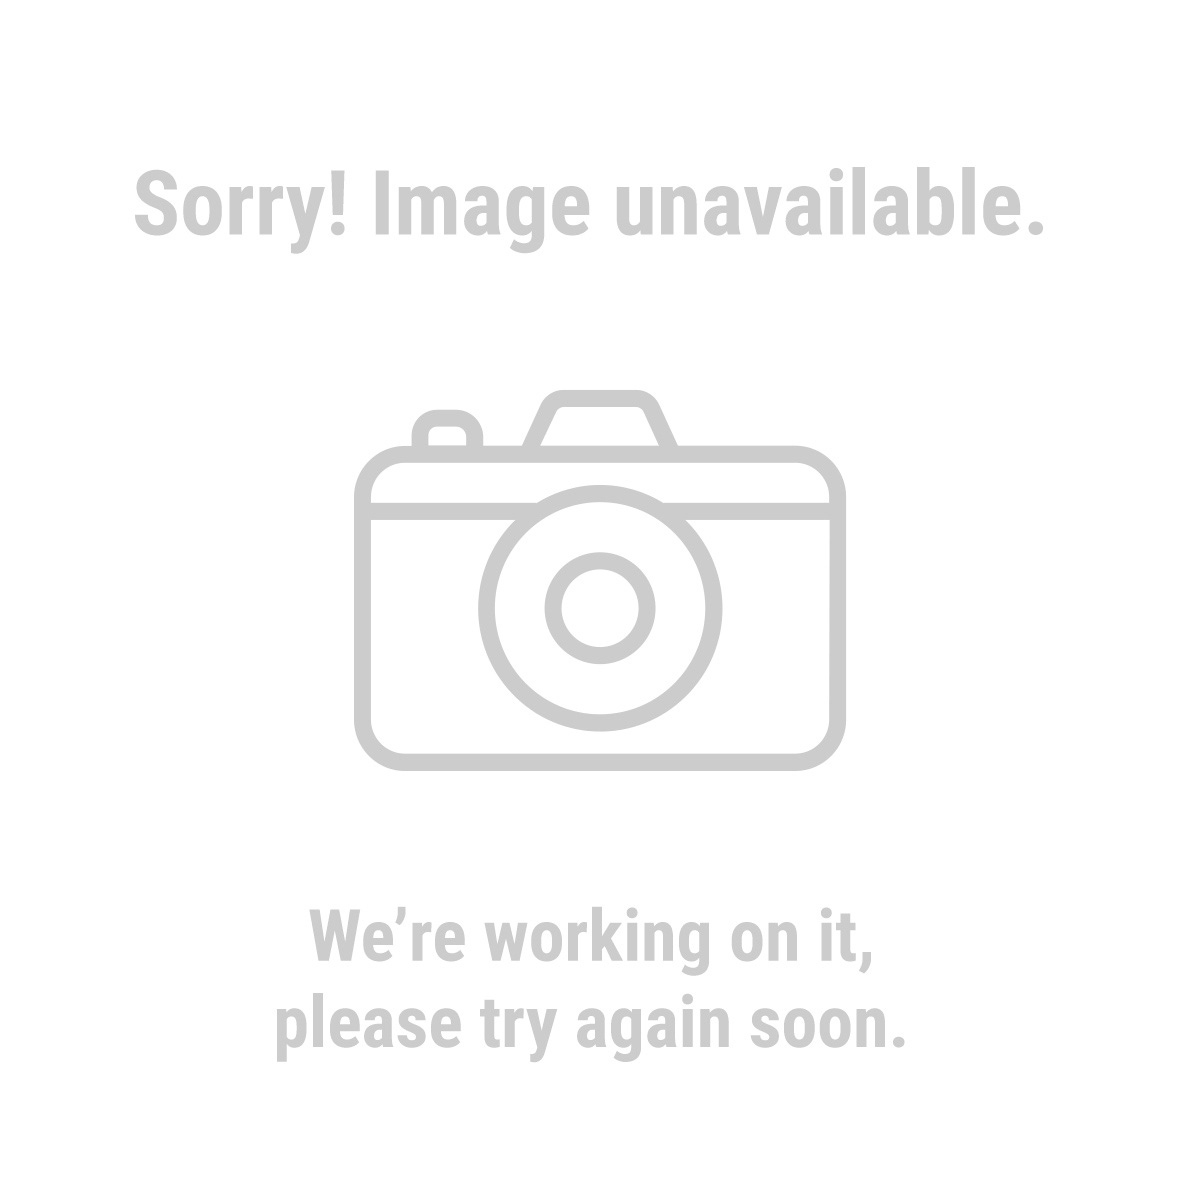 Drill Master 96289 1500 Watt Dual Temperature Heat Gun (572°/1112°)